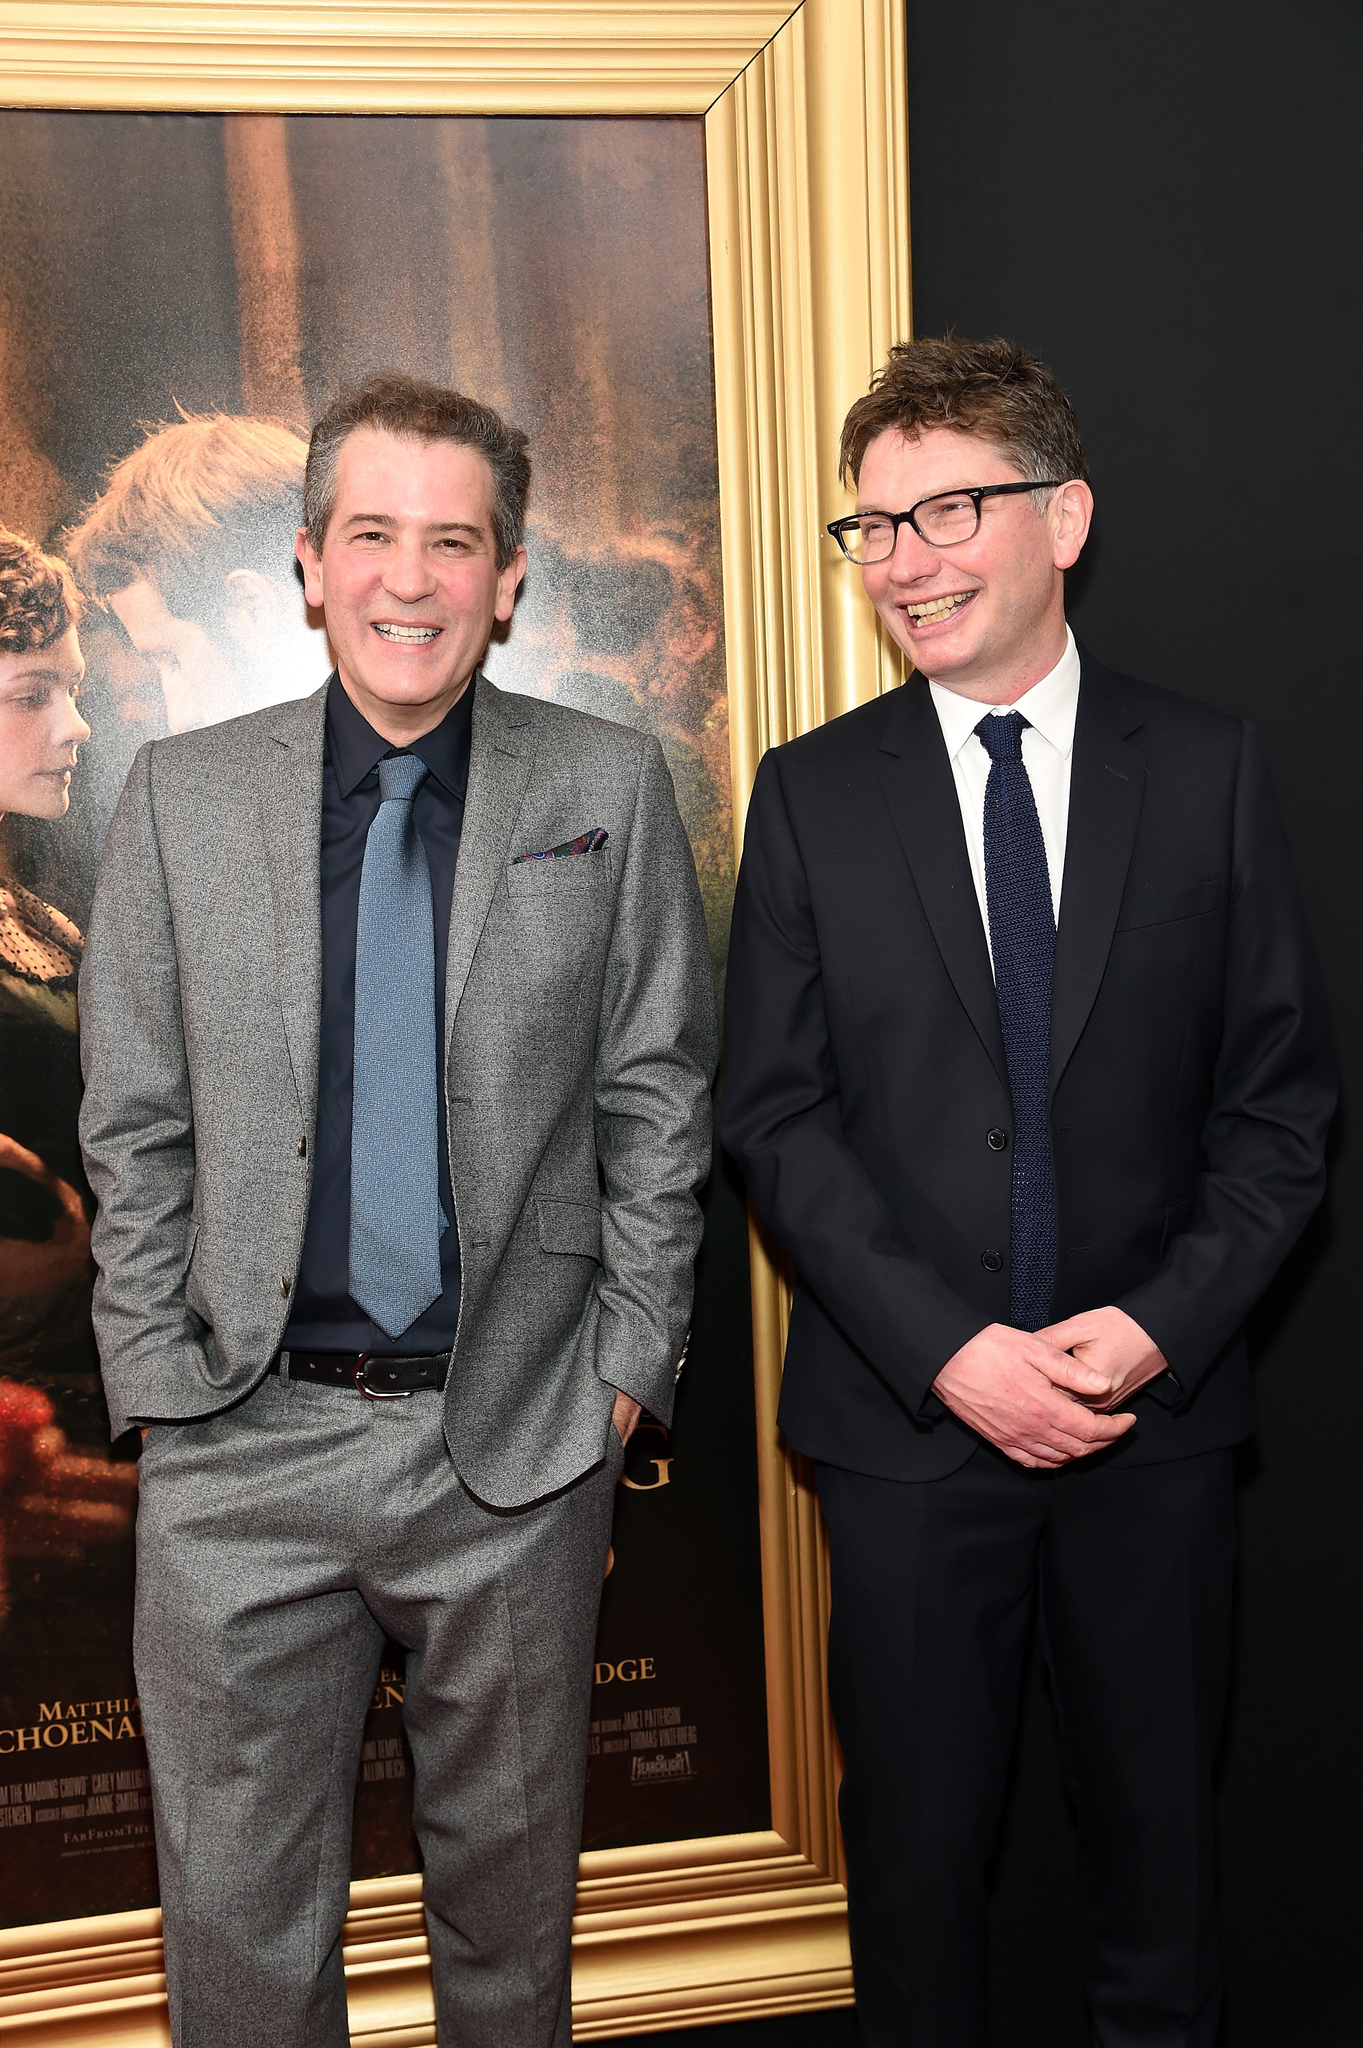 Andrew Macdonald and Allon Reich at an event for Far from the Madding Crowd (2015)